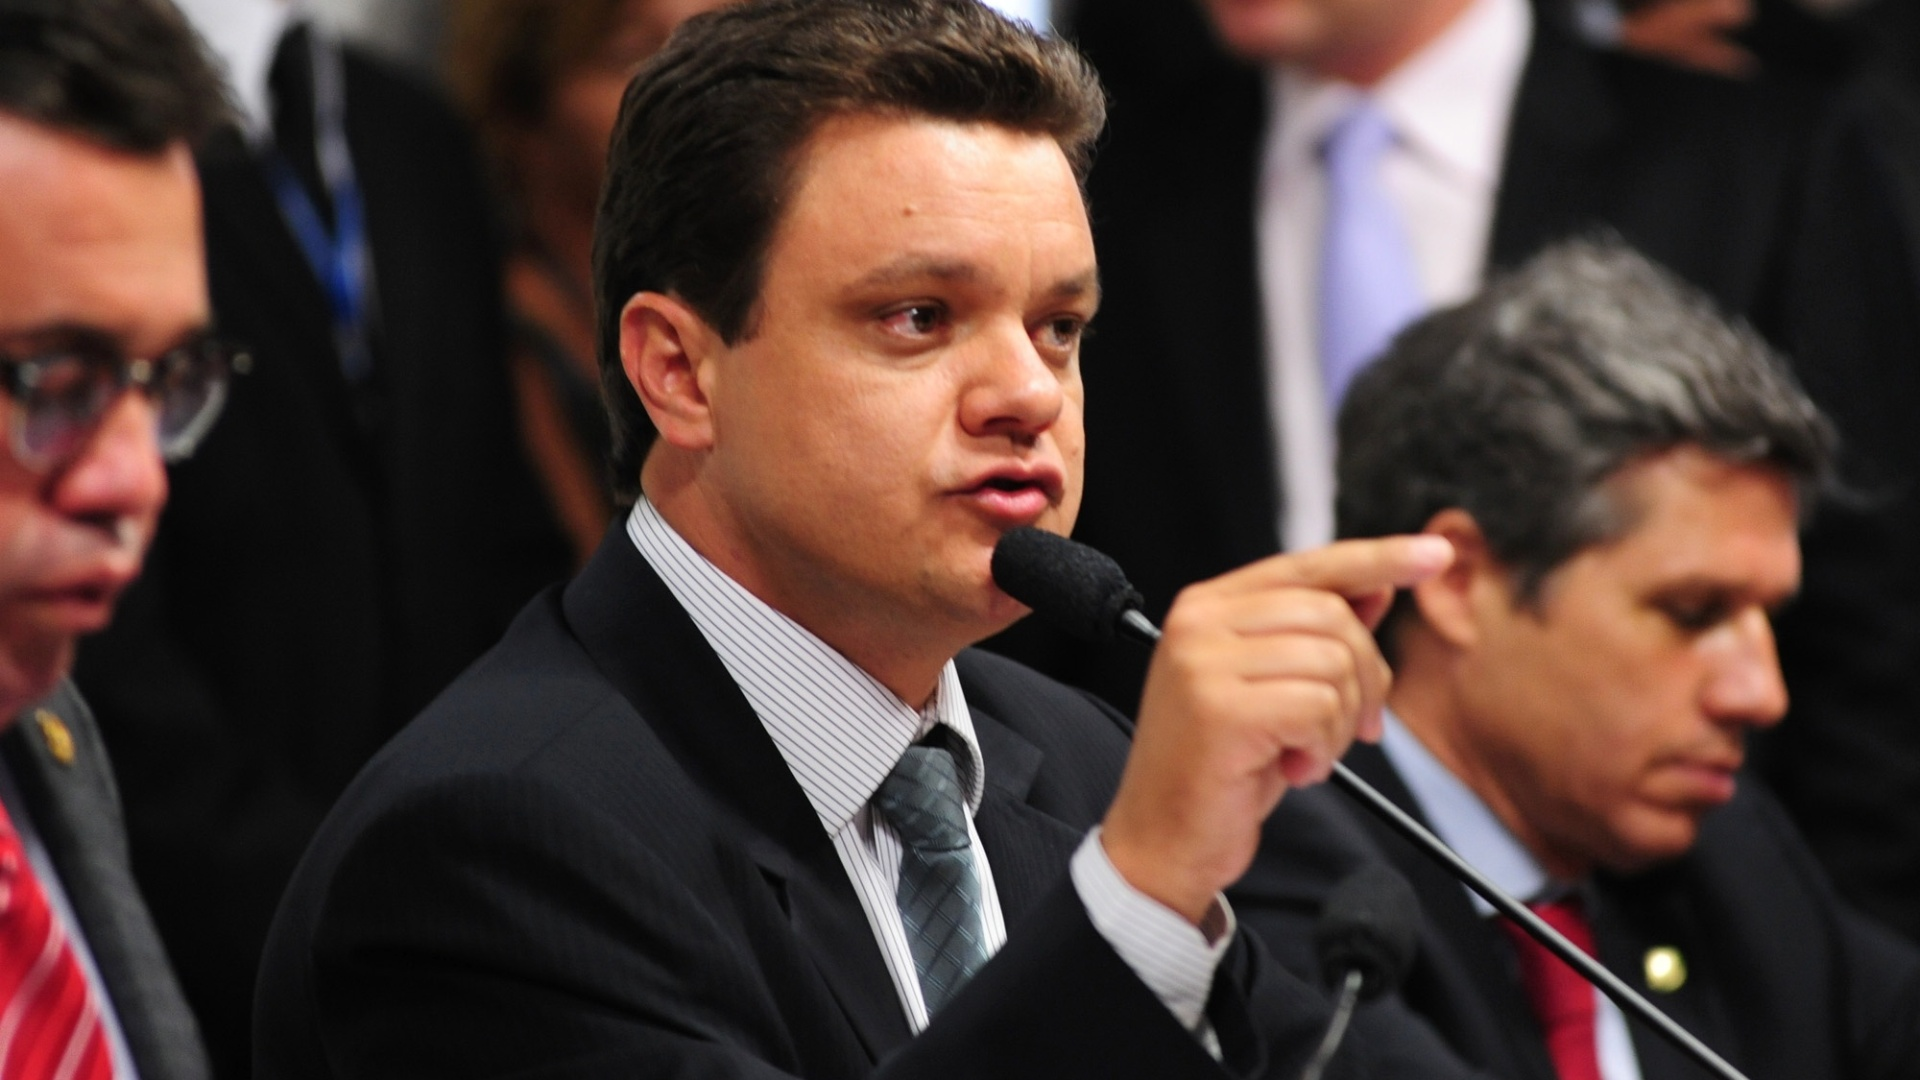 9.out.2012 - Relator da CPI, deputado federal Odair Cunha (PT-MG) fala em sesso de depoimento do deputado federal Carlos Alberto Leria (PSDB-GO) sobre seu suposto envolvimento com o esquema de Carlinhos Cachoeira 